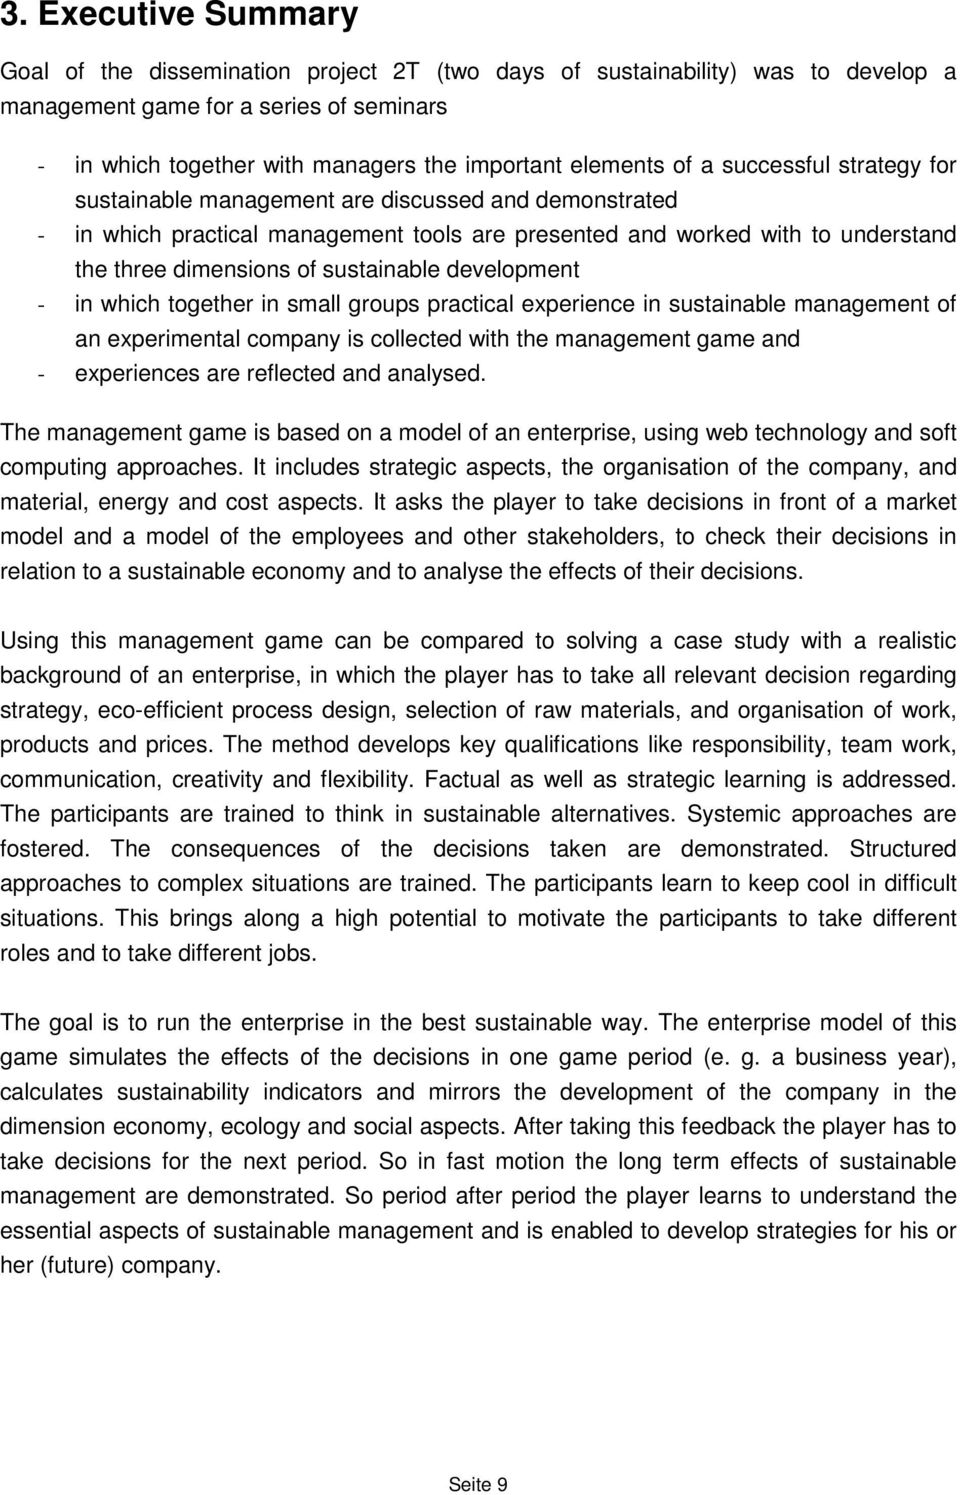 sustainable development - in which together in small groups practical experience in sustainable management of an experimental company is collected with the management game and - experiences are